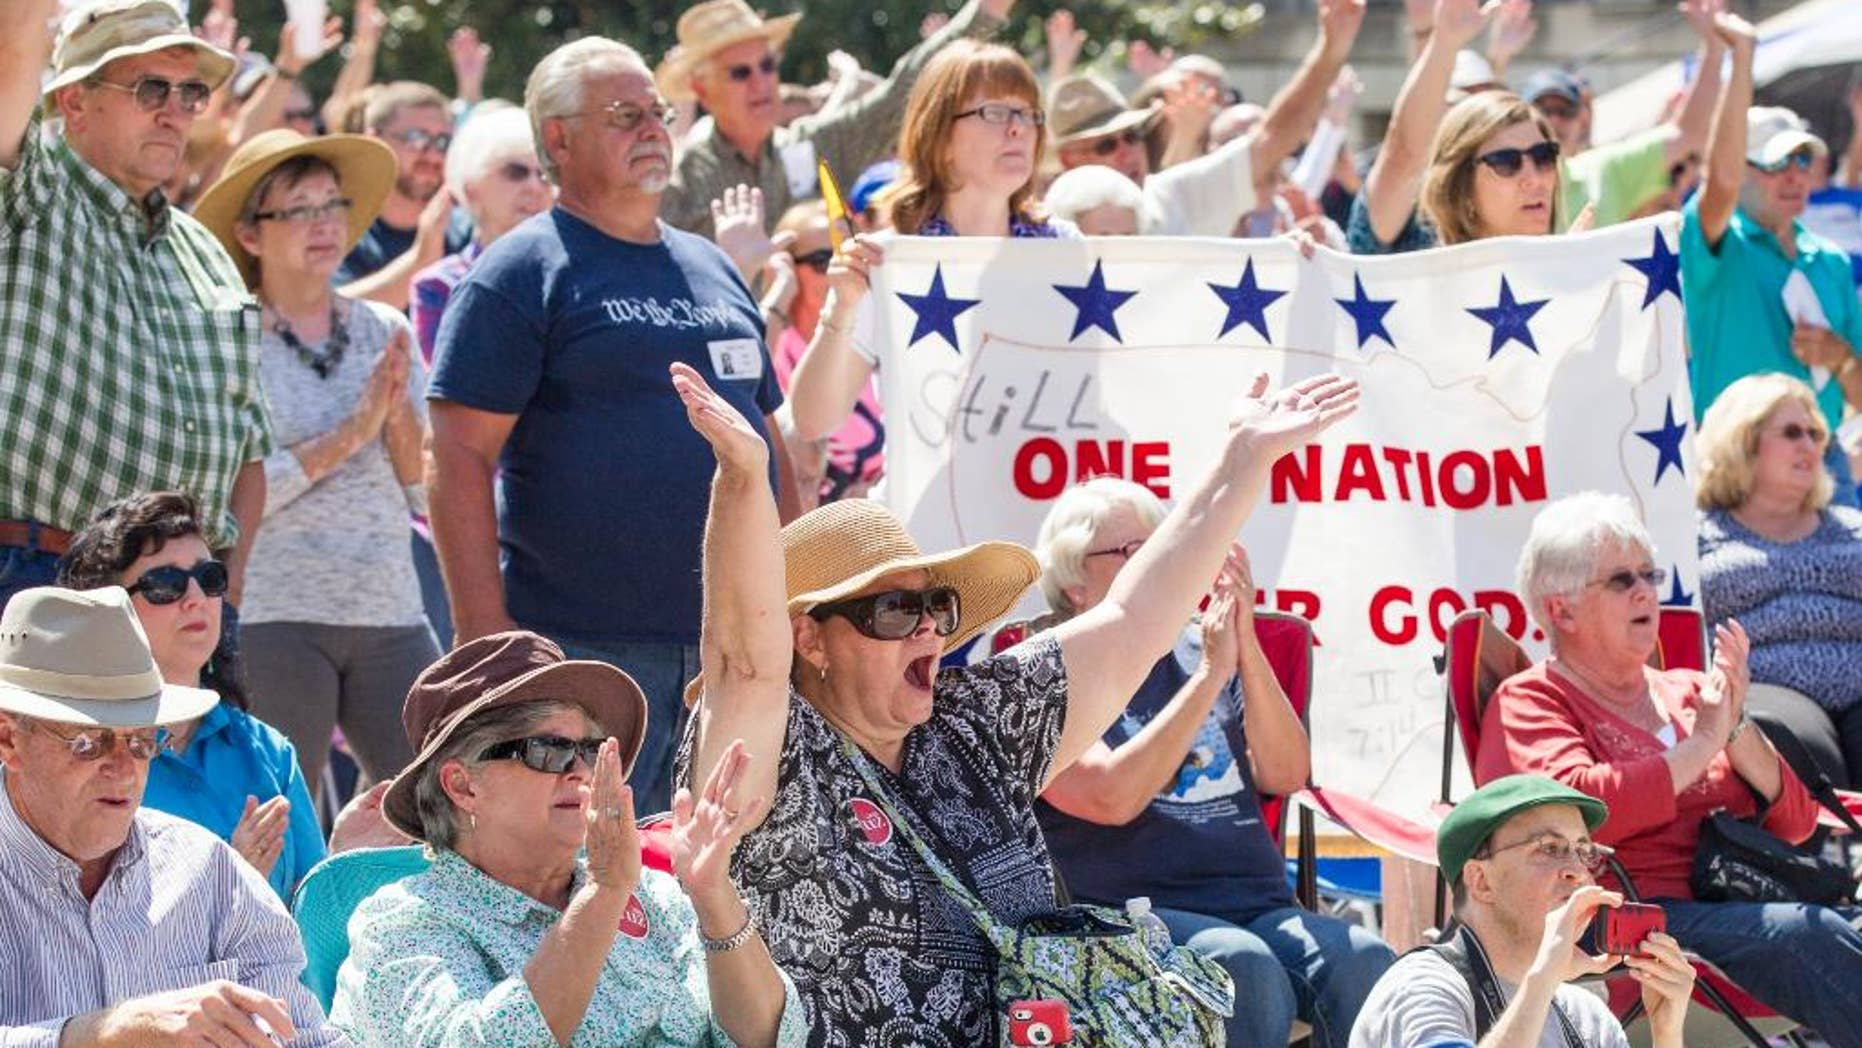 Members of the crowd cheer during a Christian conservatives rally outside the Tennessee Capitol on Thursday, Sept. 17, 2015, in Nashville. The event featured Joe Davis, the husband of Kentucky clerk Kim Davis, and Rafael Cruz, the father of U.S. Sen. Ted Cruz, a Republican presidential candidate. (AP Photo/Erik Schelzig)